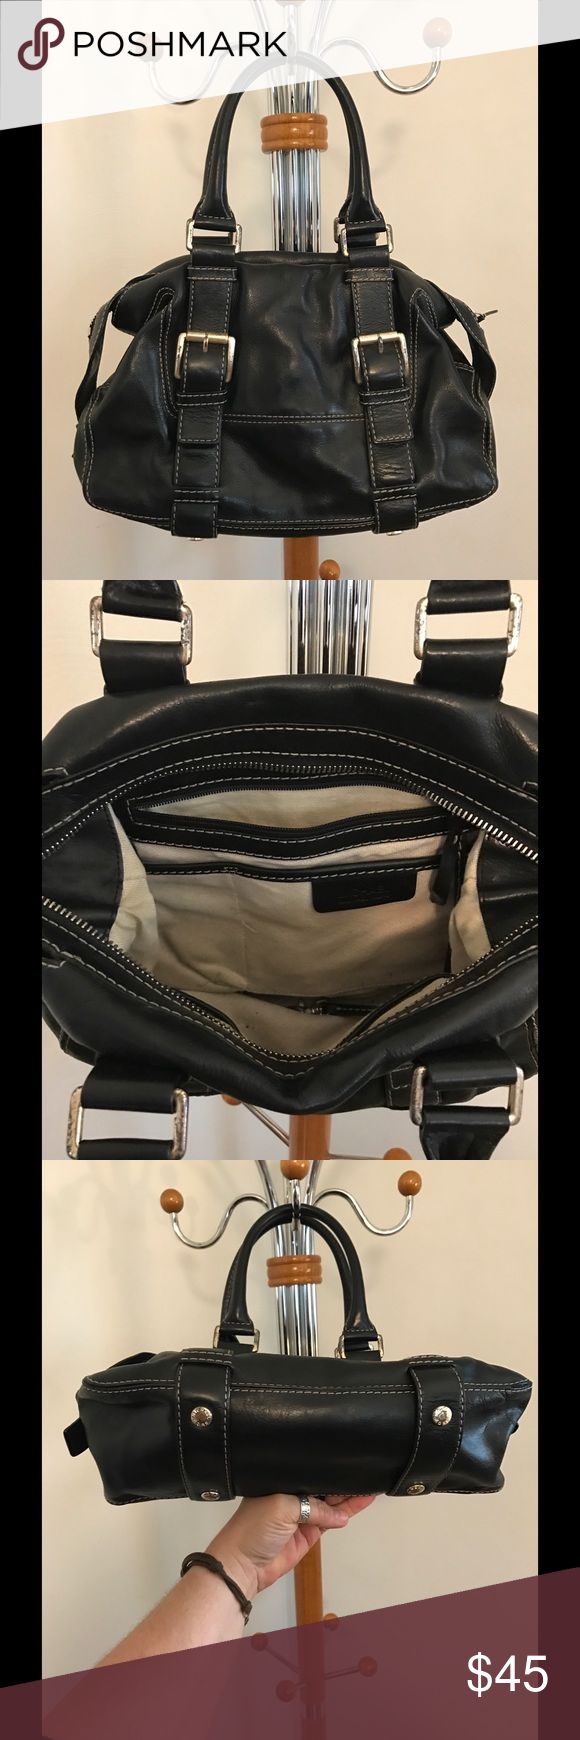 Michael Kors black purse Michael Kors Black purse with gold hardware. The hardware is a little scuffed up.  Pen marks on the inside lining of the bag.  Outside leather is in great condition. Michael Kors Bags Satchels